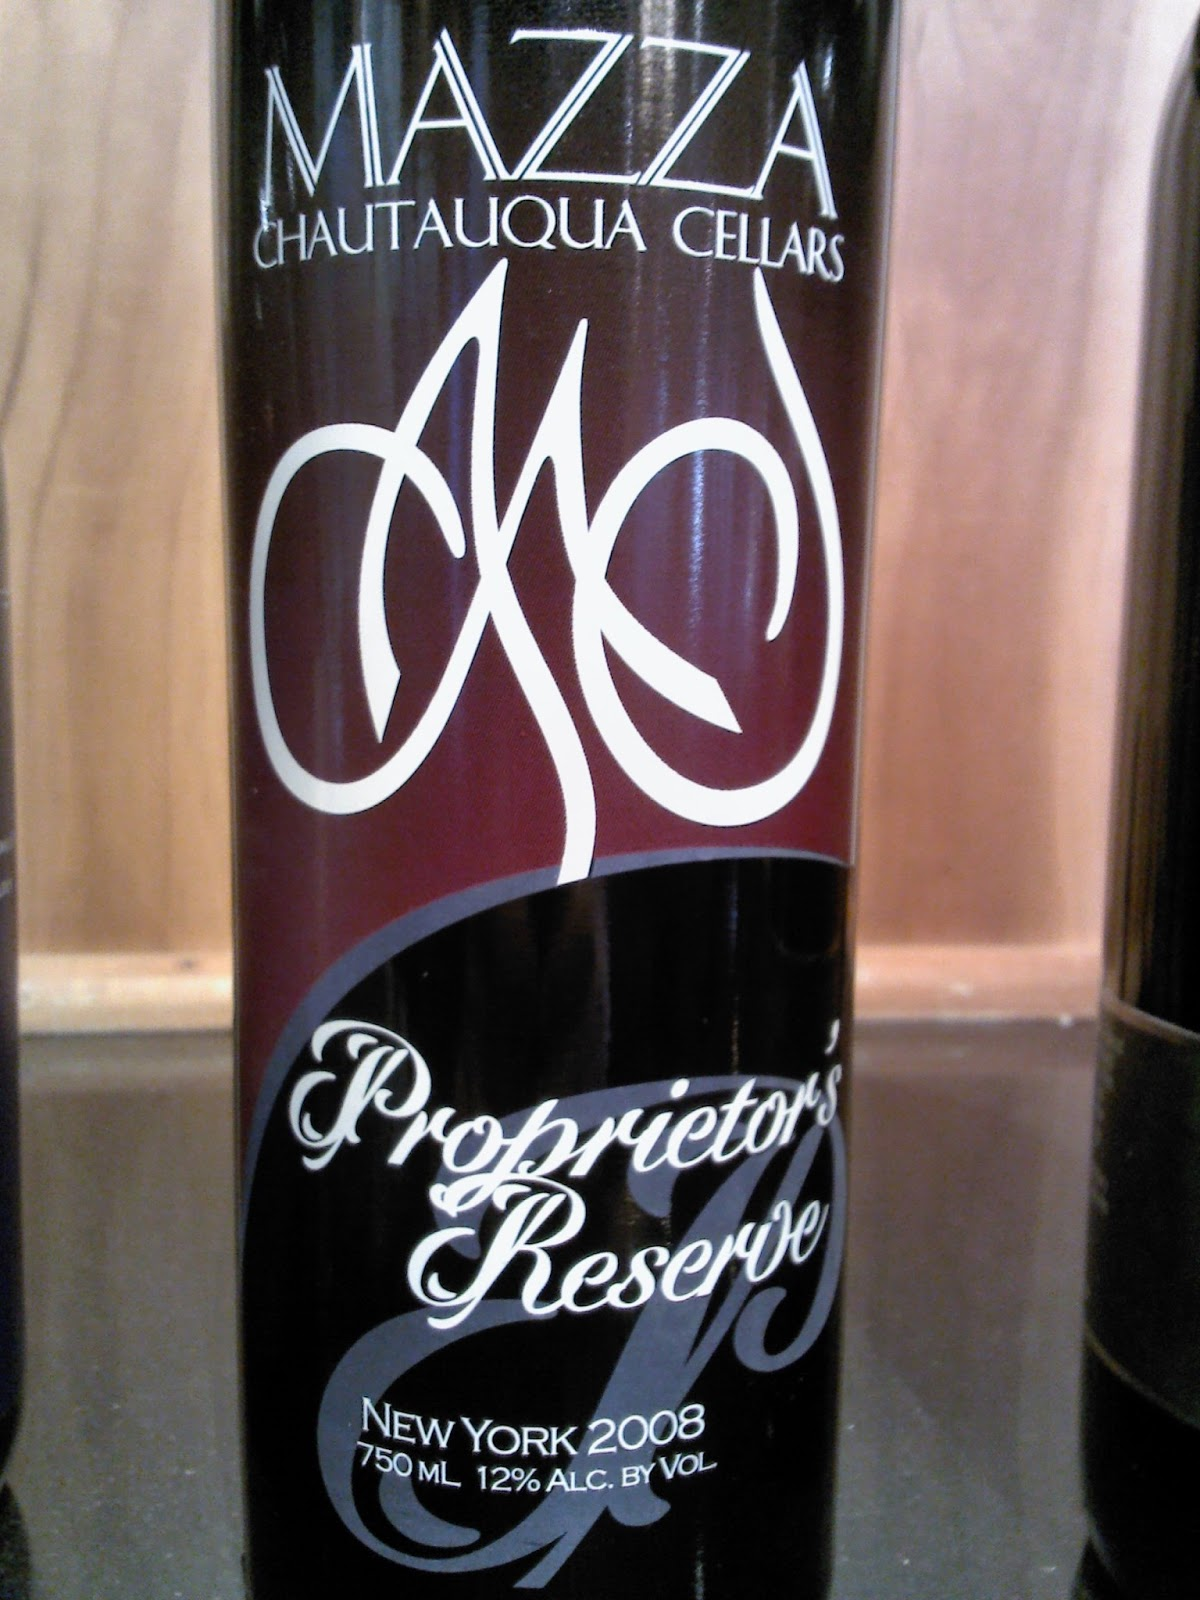 East Coast Wineries Mazza Chautauqua Proprietor S Reserve